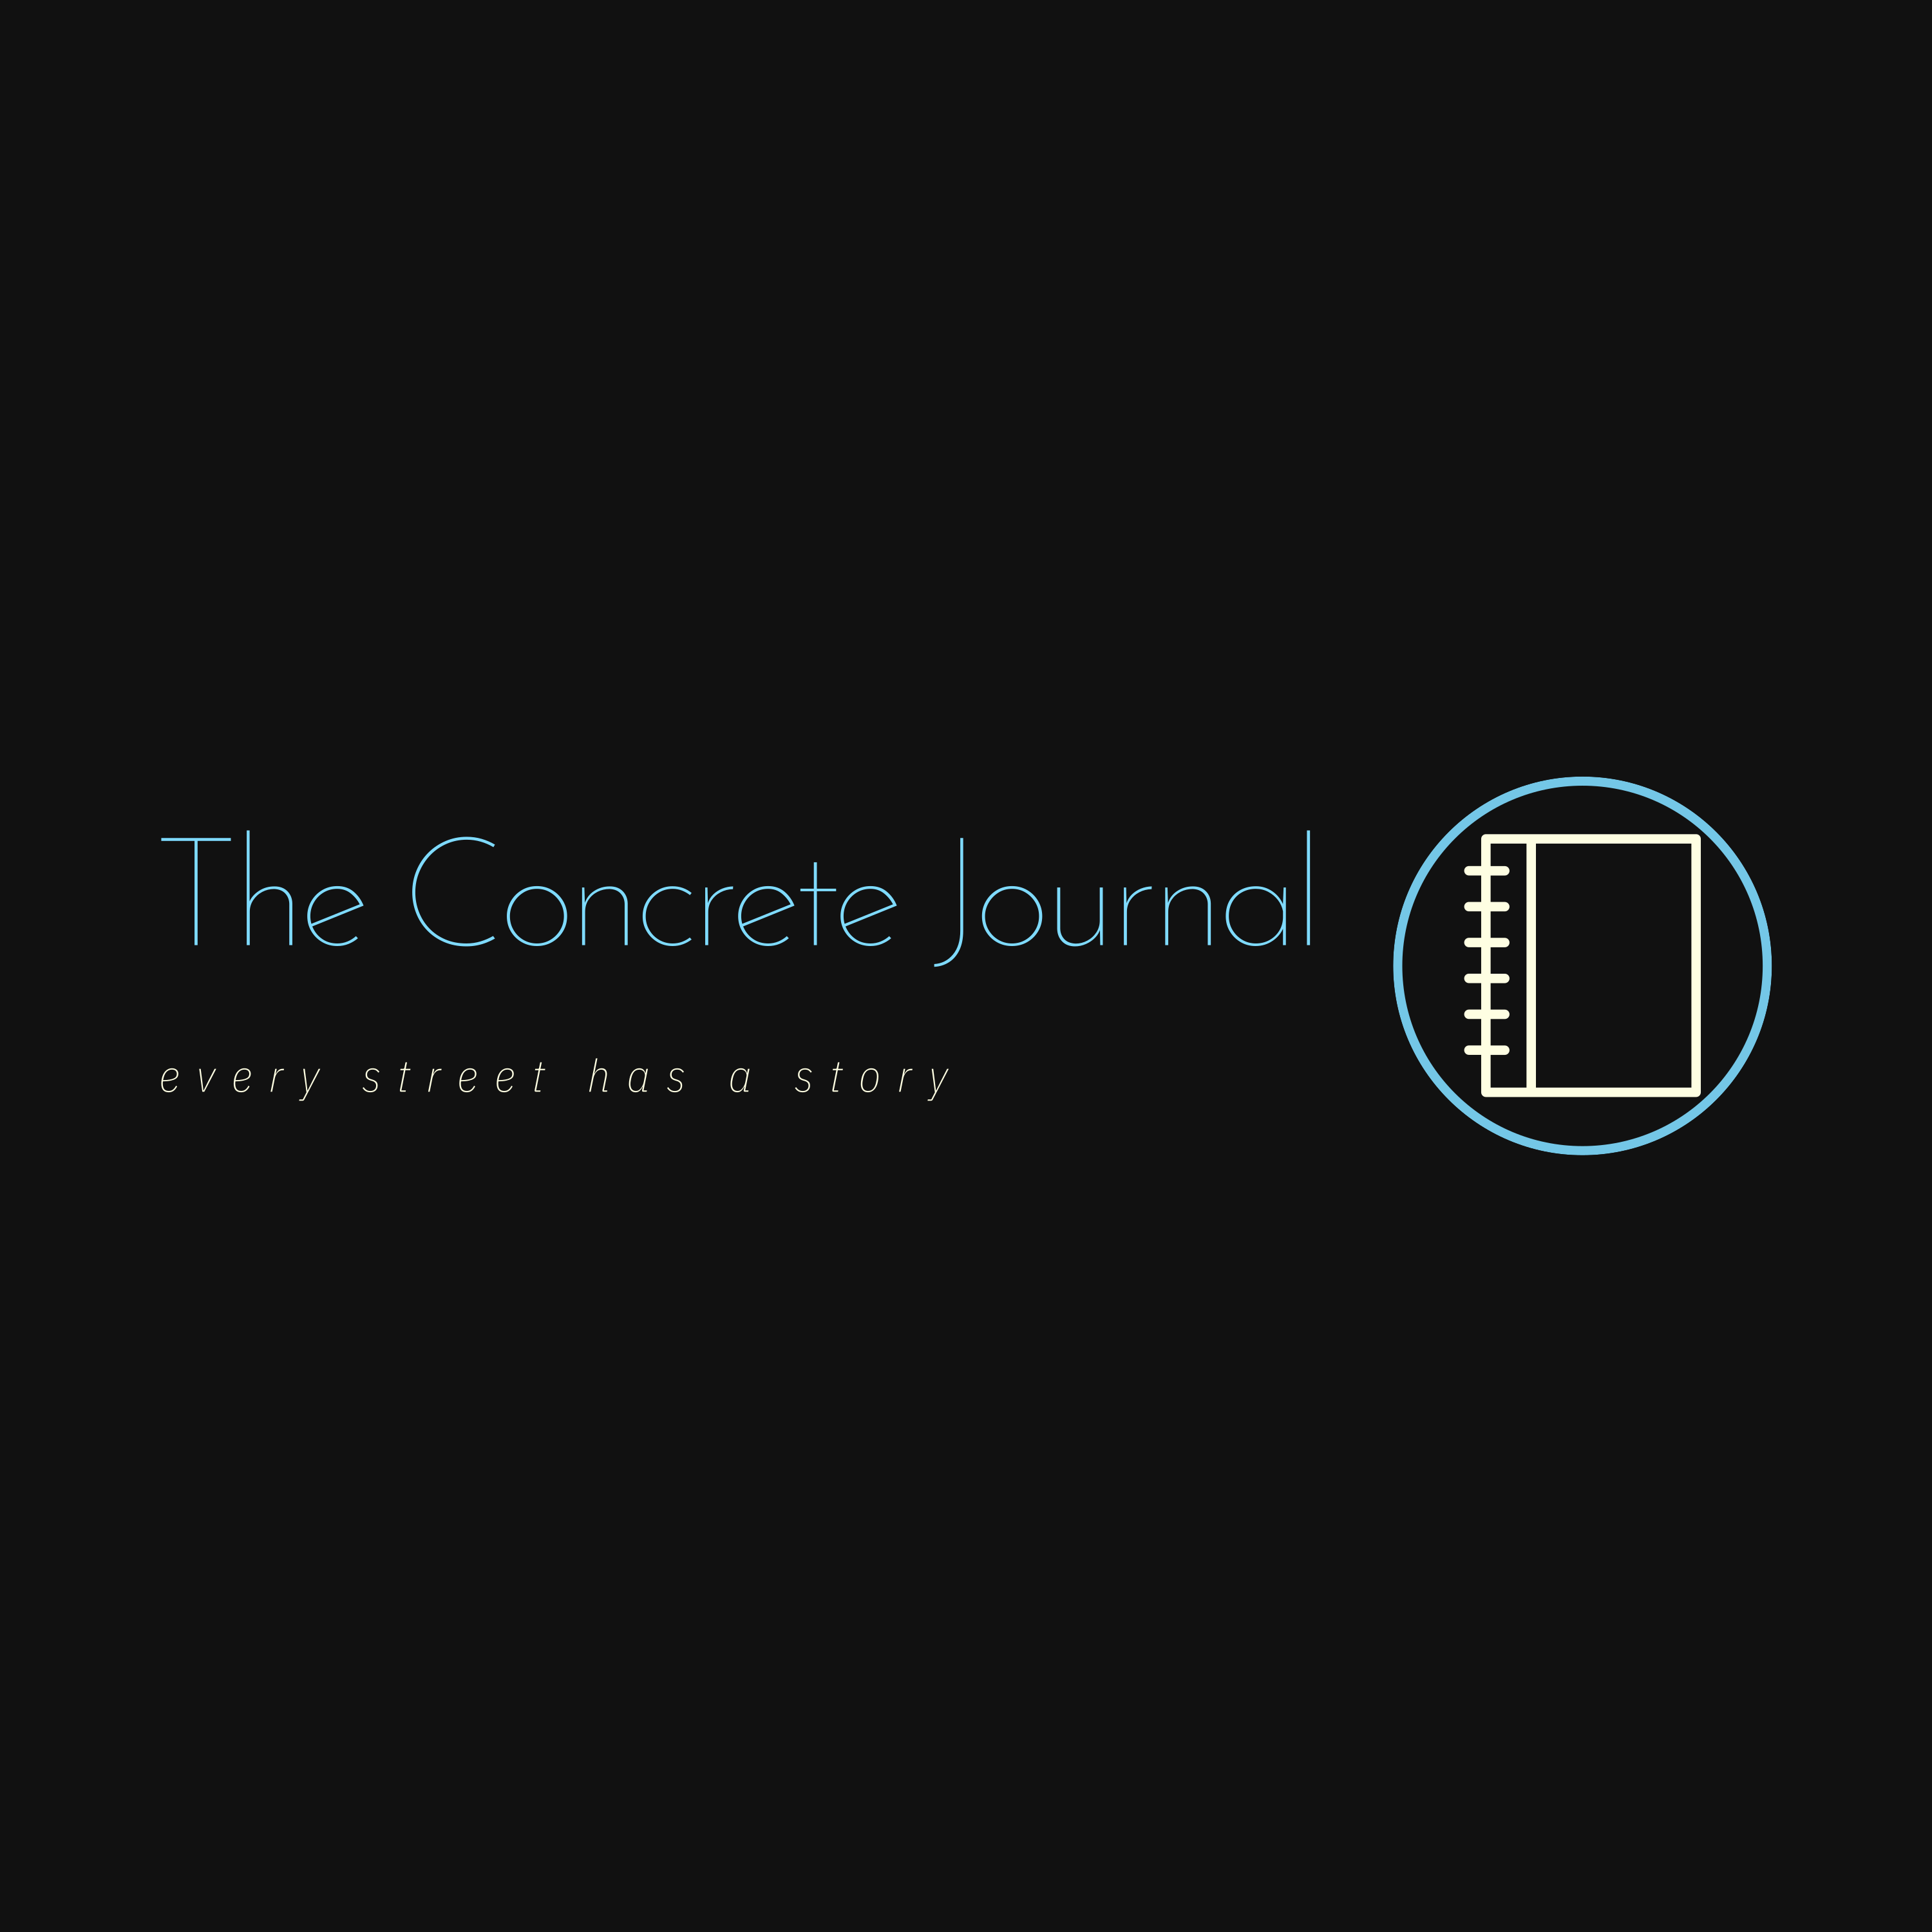 The Concrete Journal